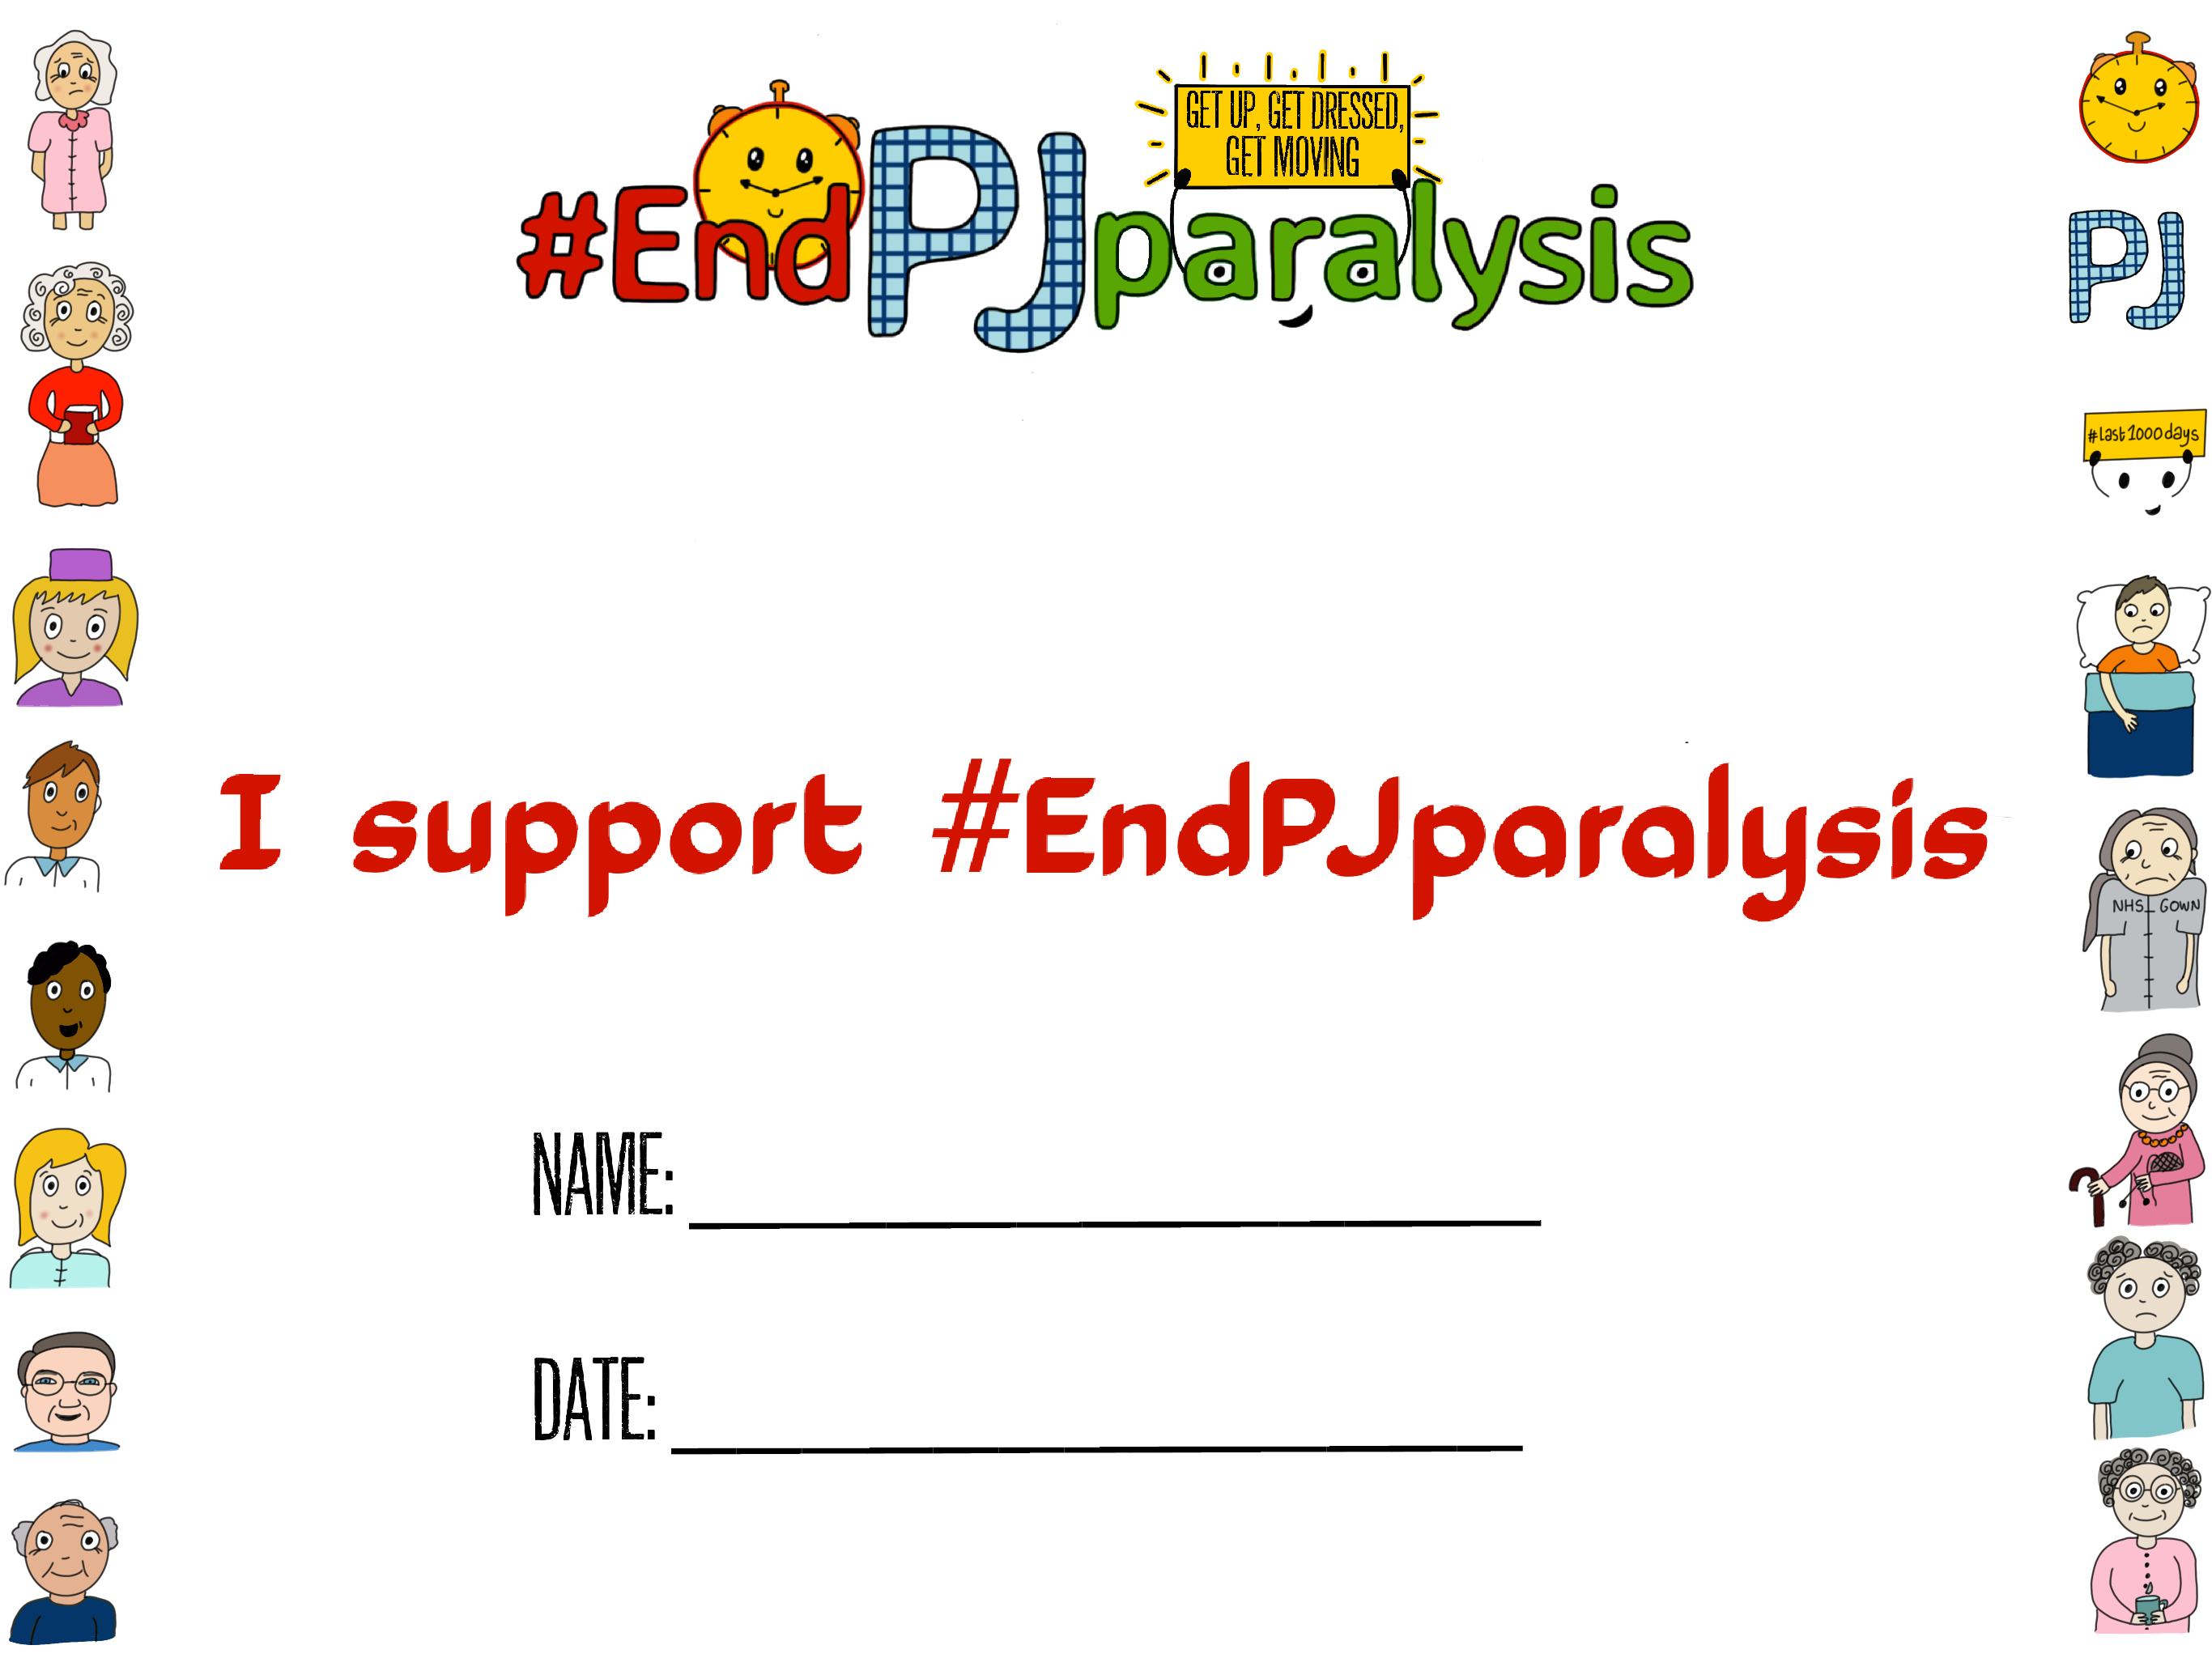 I support #EndPJparalysis pledge